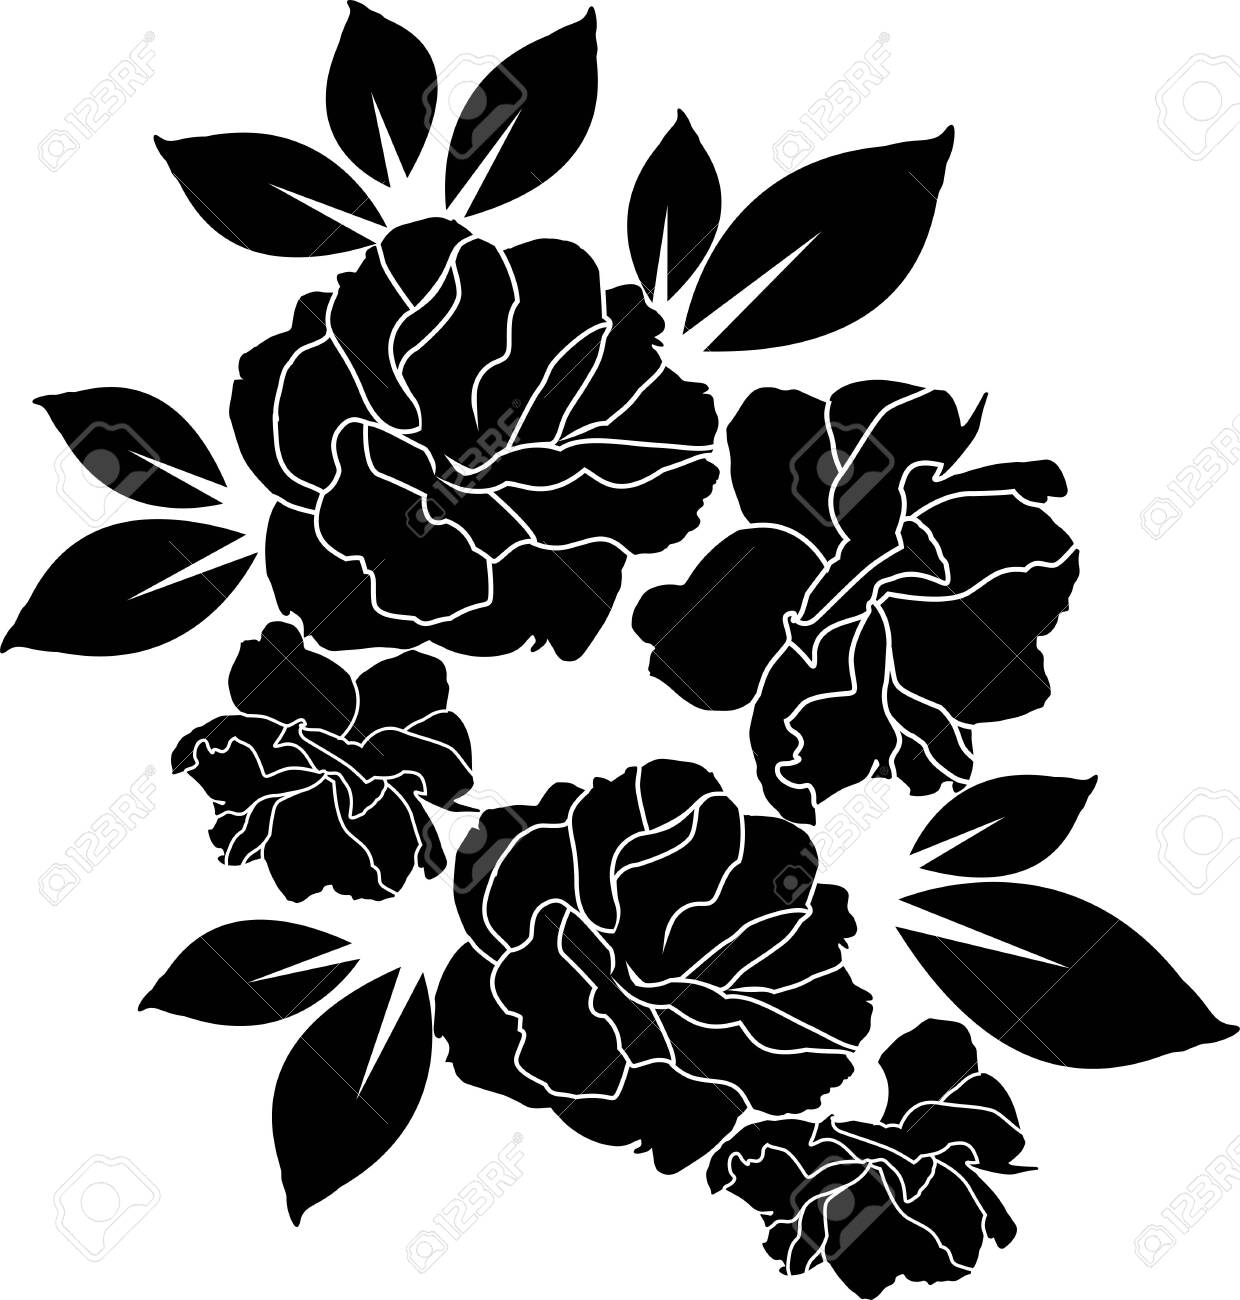 rose black and white wallpaper or textile clean design - 149667887